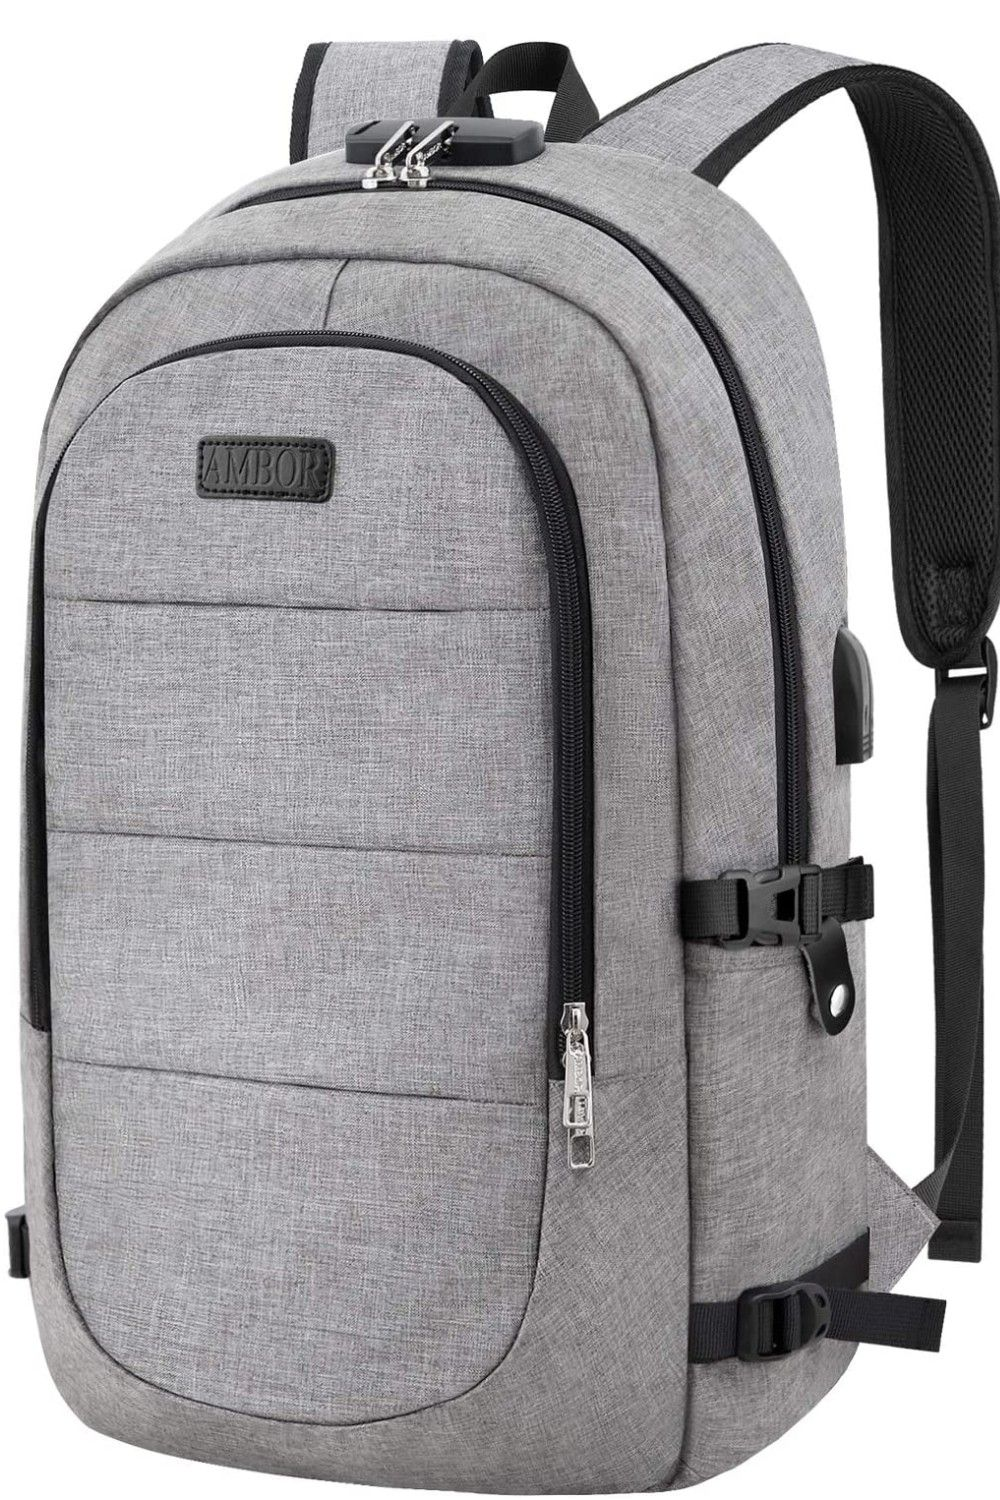 Travel Laptop Backpack Ambor 15 6 17 3 Inch Anti Theft Business Backpack Travel Laptop Backpack Daypack Backpack Laptop Backpack